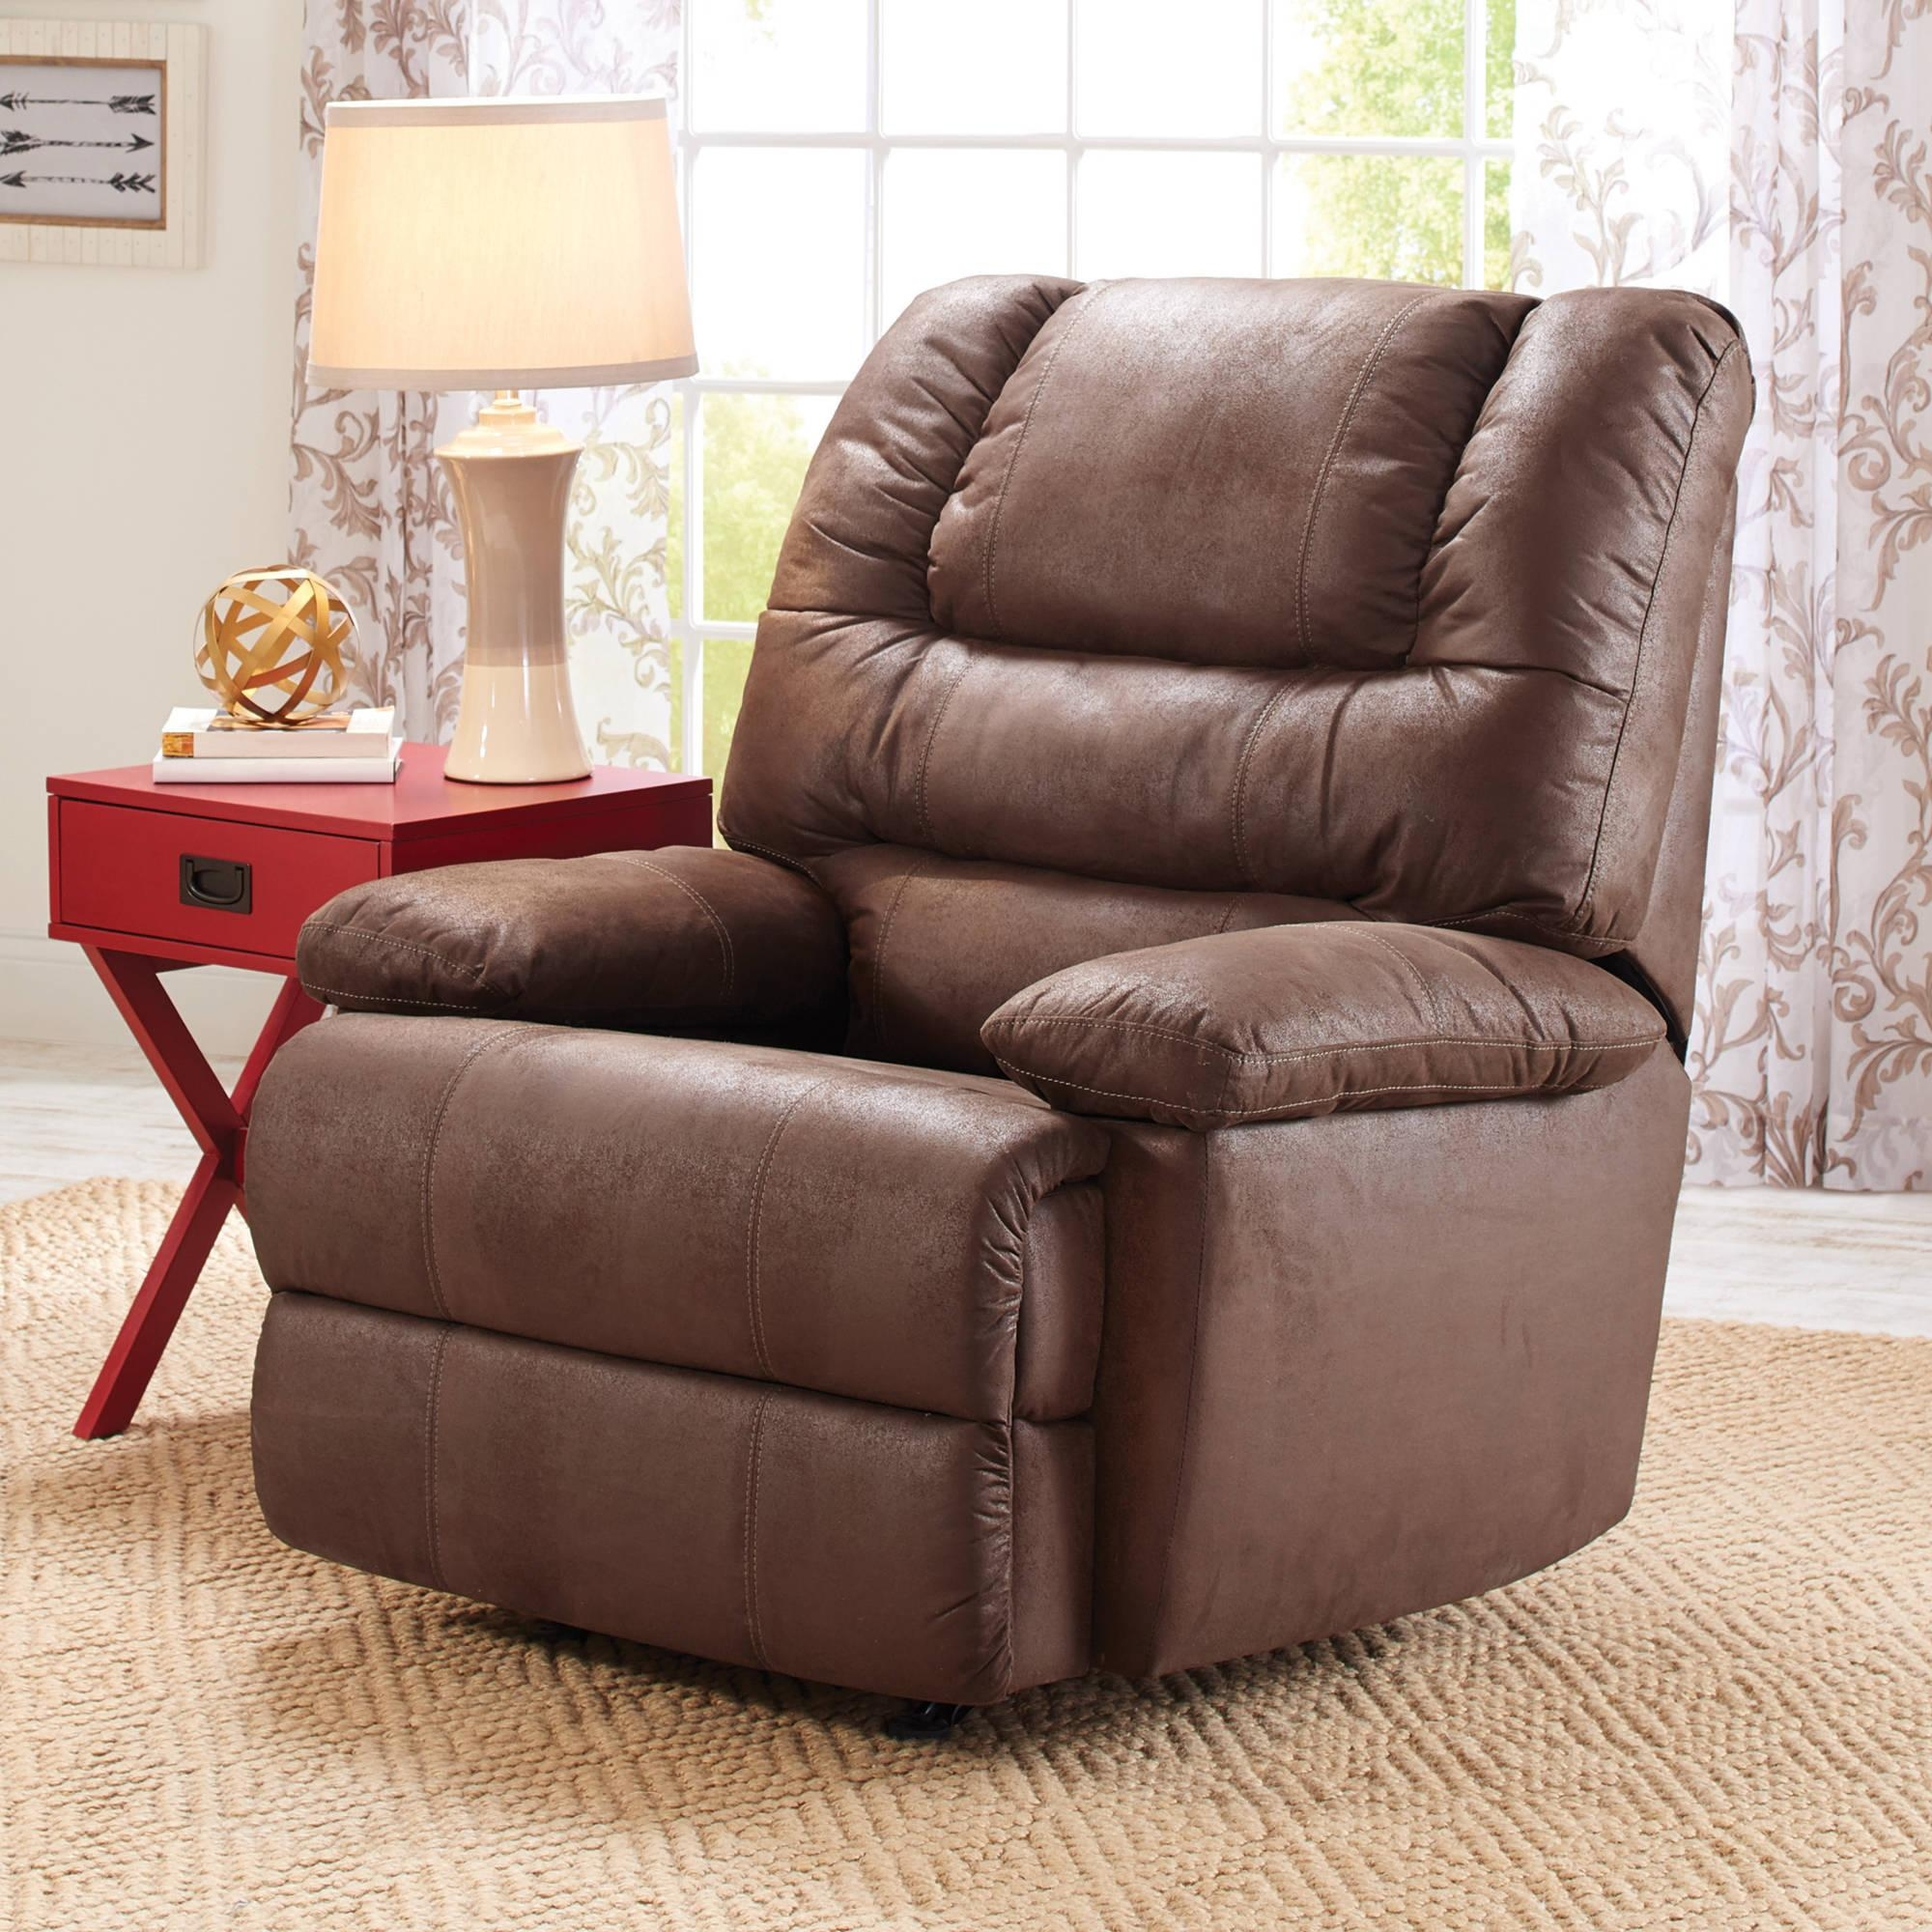 Marvelous Reclining Sofa Chair 1659 62Ph 204 72 Throughout Recliner Sofa Chairs (Image 16 of 20)